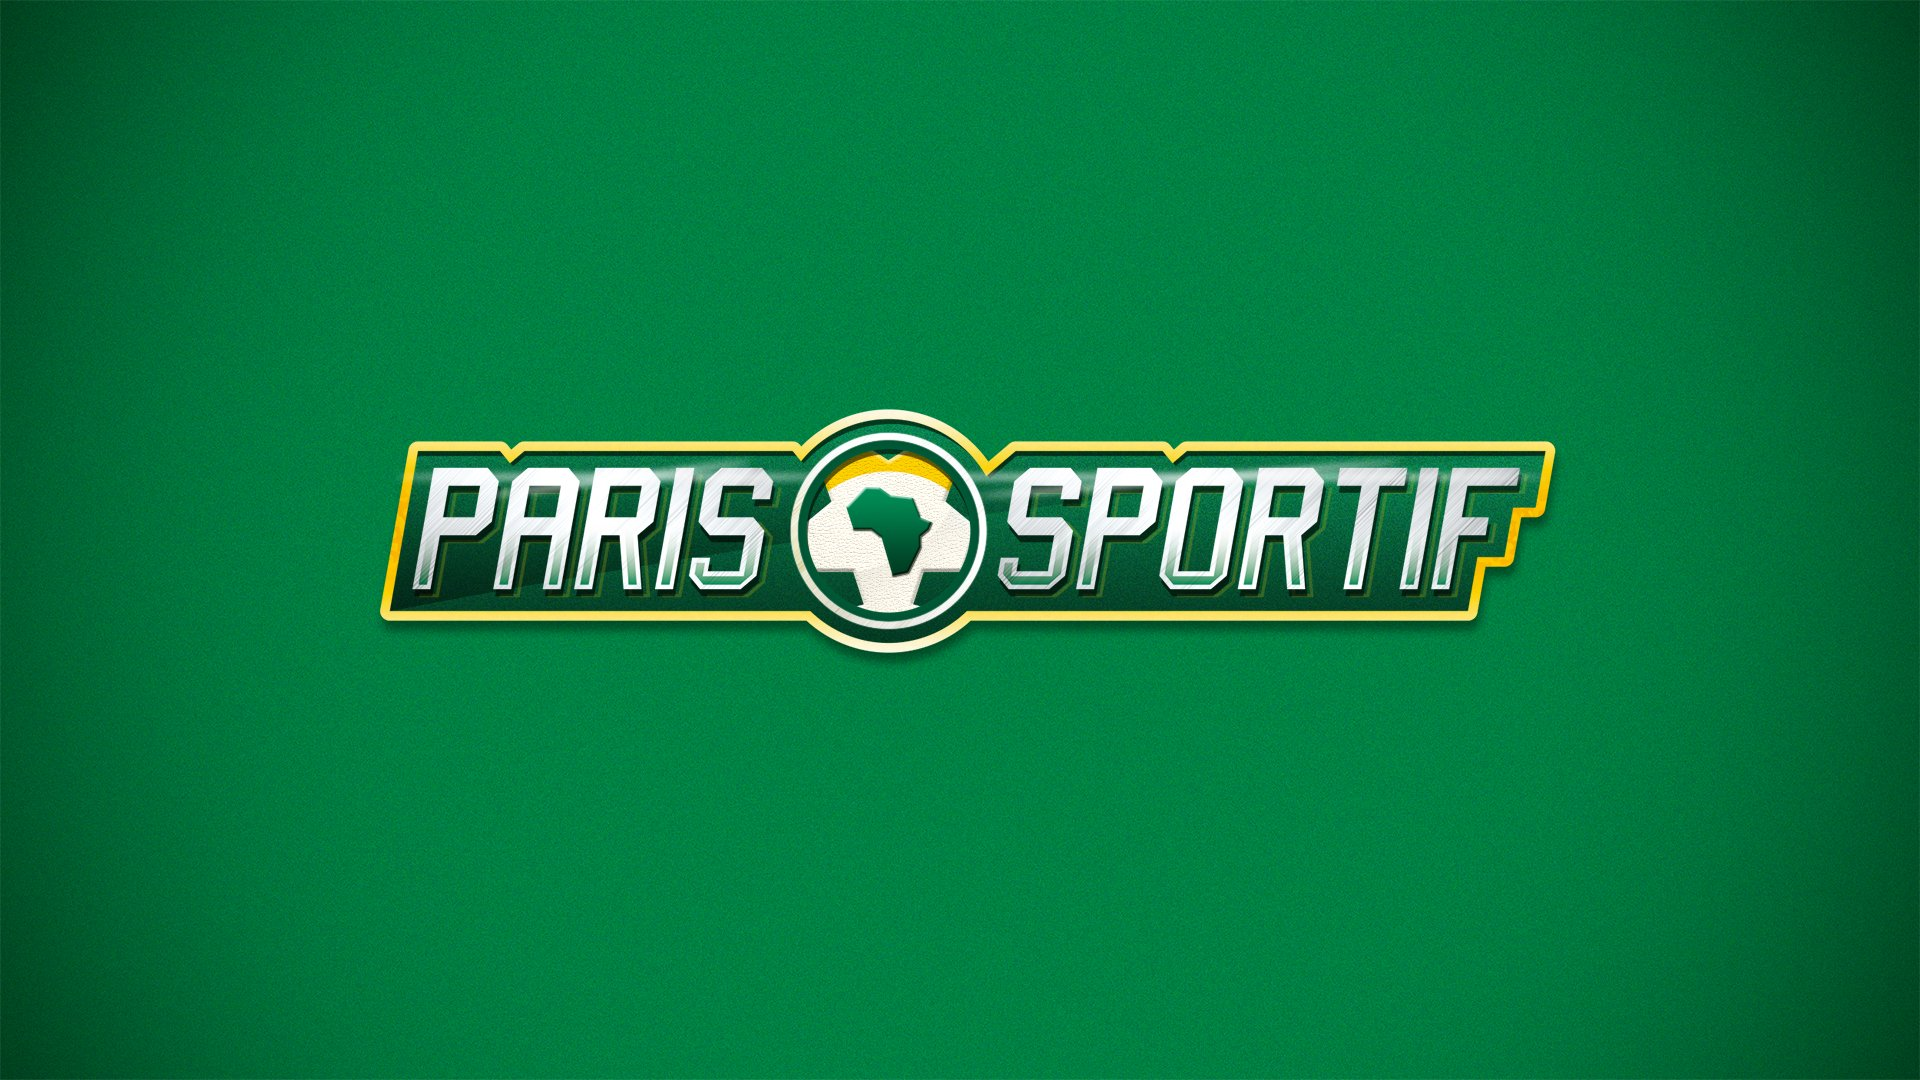 Логотип Paris Sportif